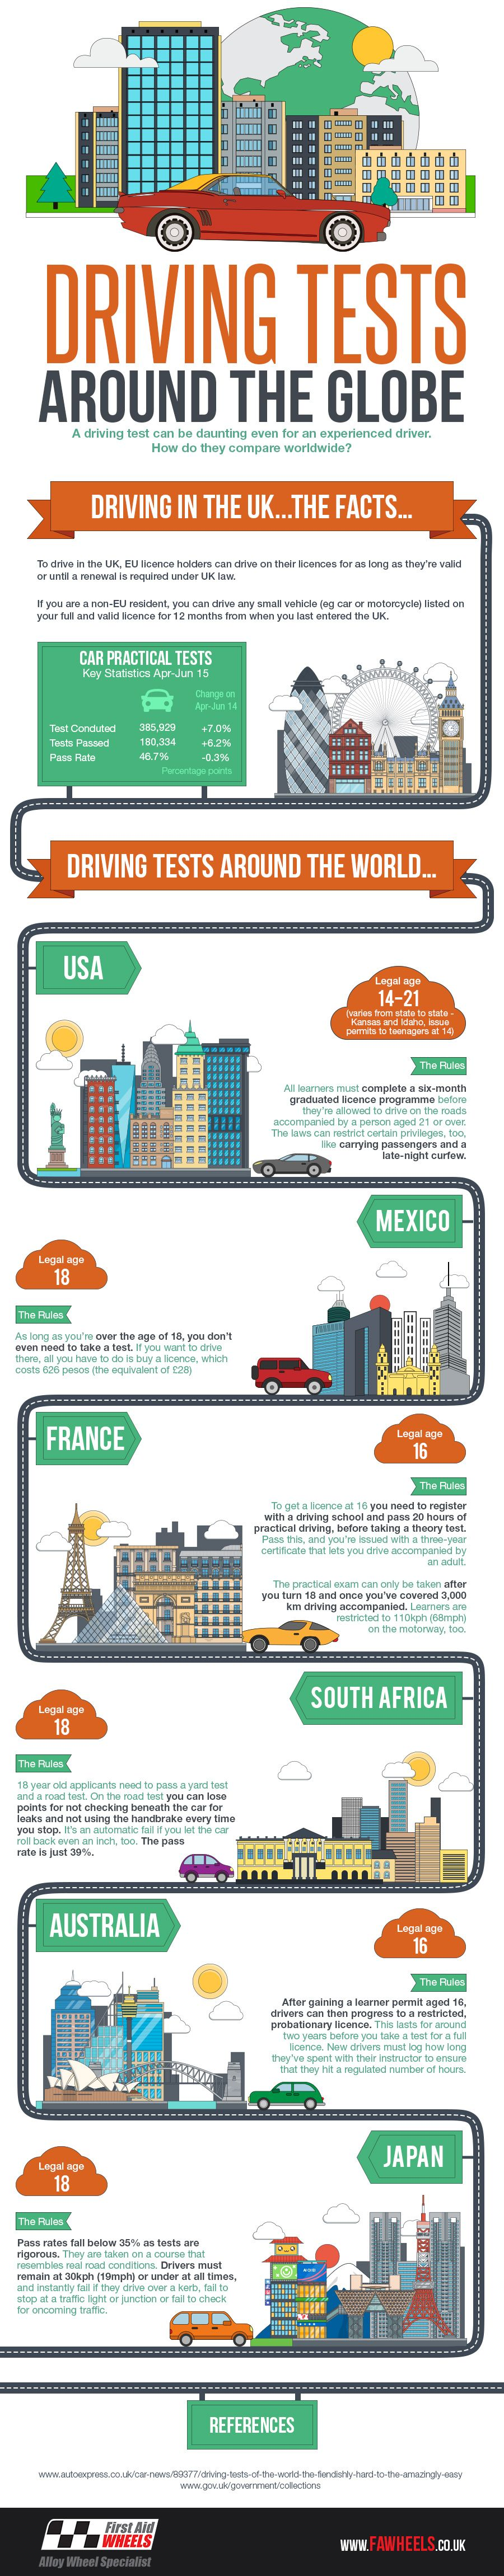 Driving-Tests-Around-The-World-Infographic